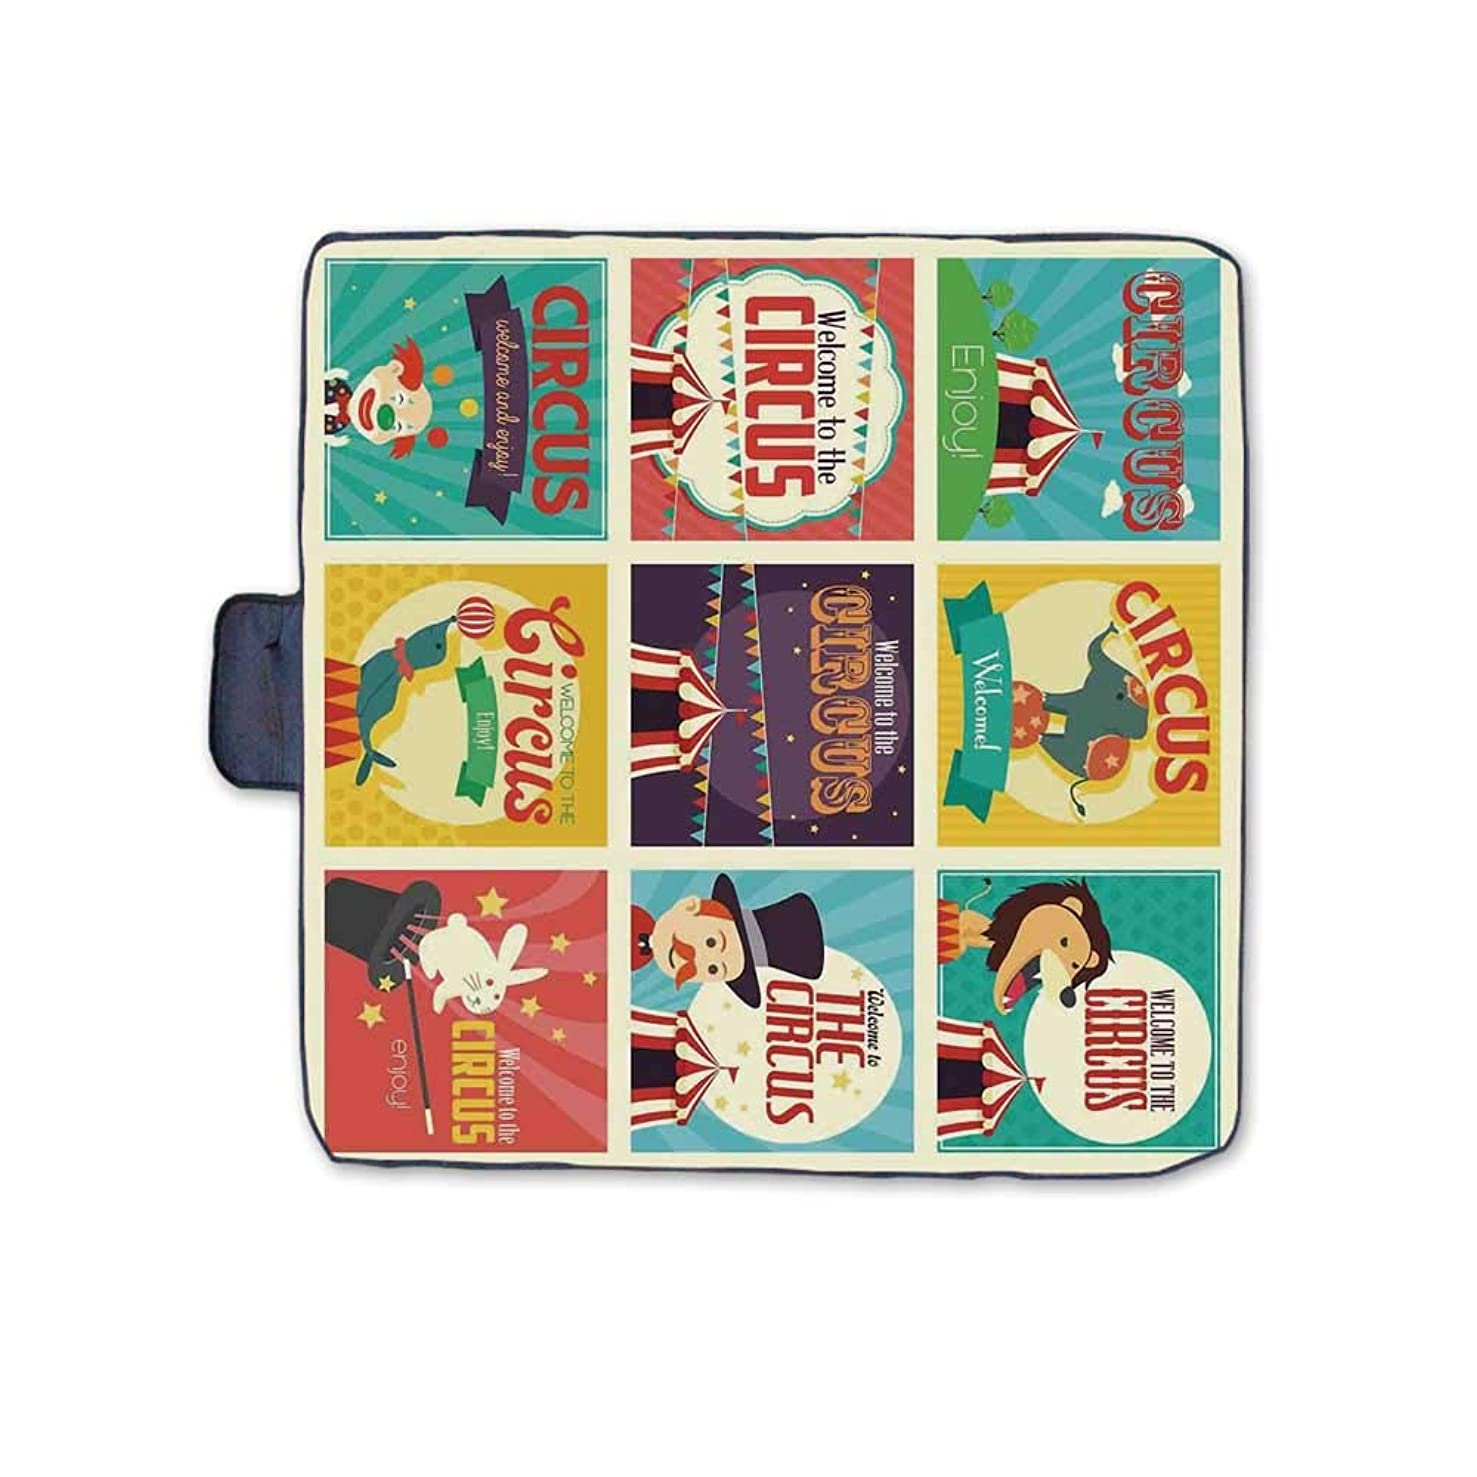 TecBillion Circus Decor Outdoor Picnic Blanket,Collection of Old Circus Icons Carnival Magicians Old Fashioned Nostalgic Festive Artsy Print Mat for Picnics Beaches Camping,58